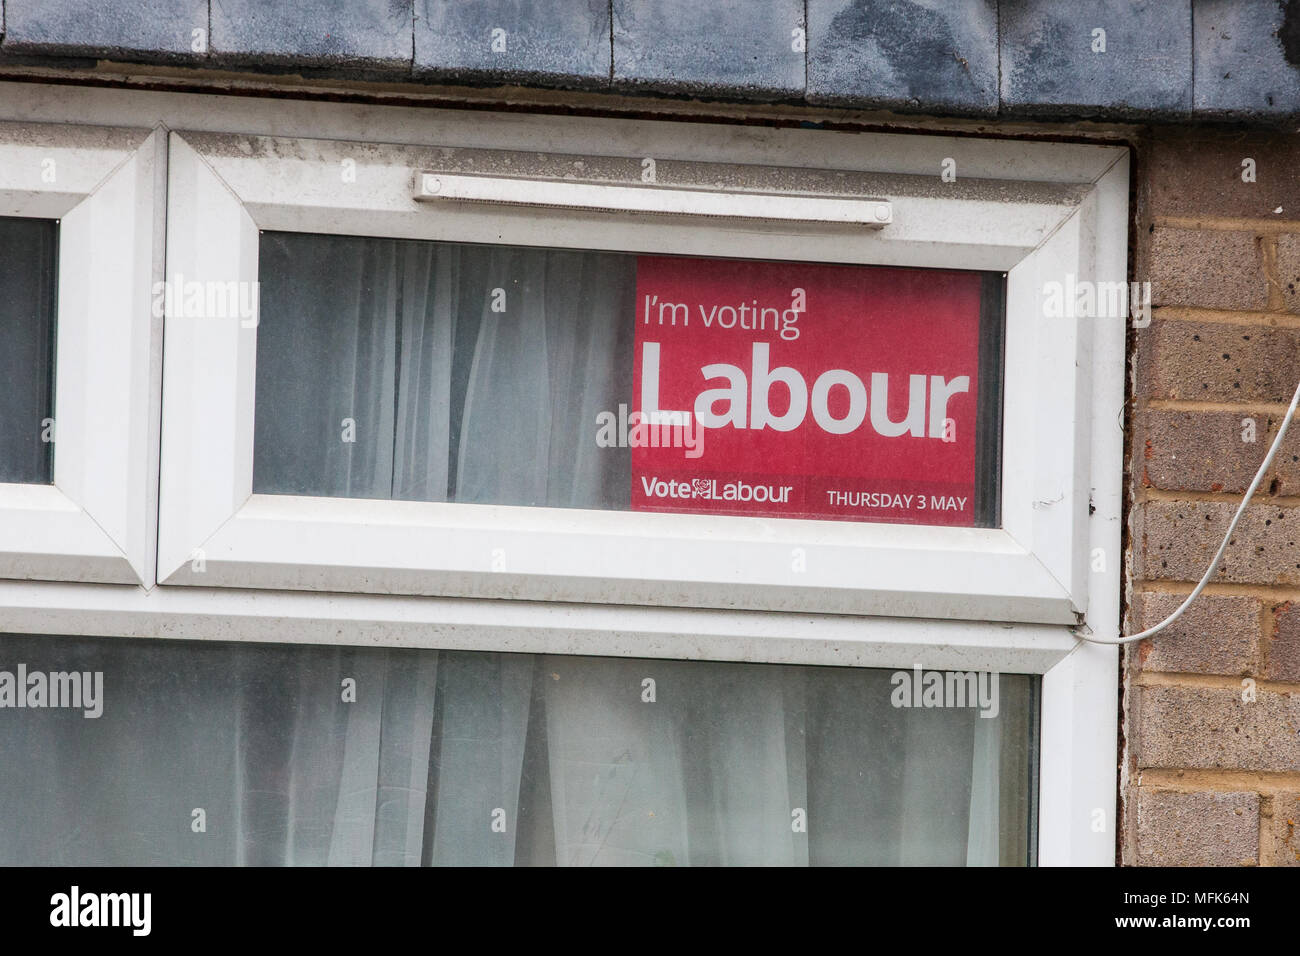 West Drayton, UK. 26th April, 2018. A Labour Party poster displayed in a window in Hillingdon in advance of voting for the local elections. Credit: Mark Kerrison/Alamy Live News - Stock Image